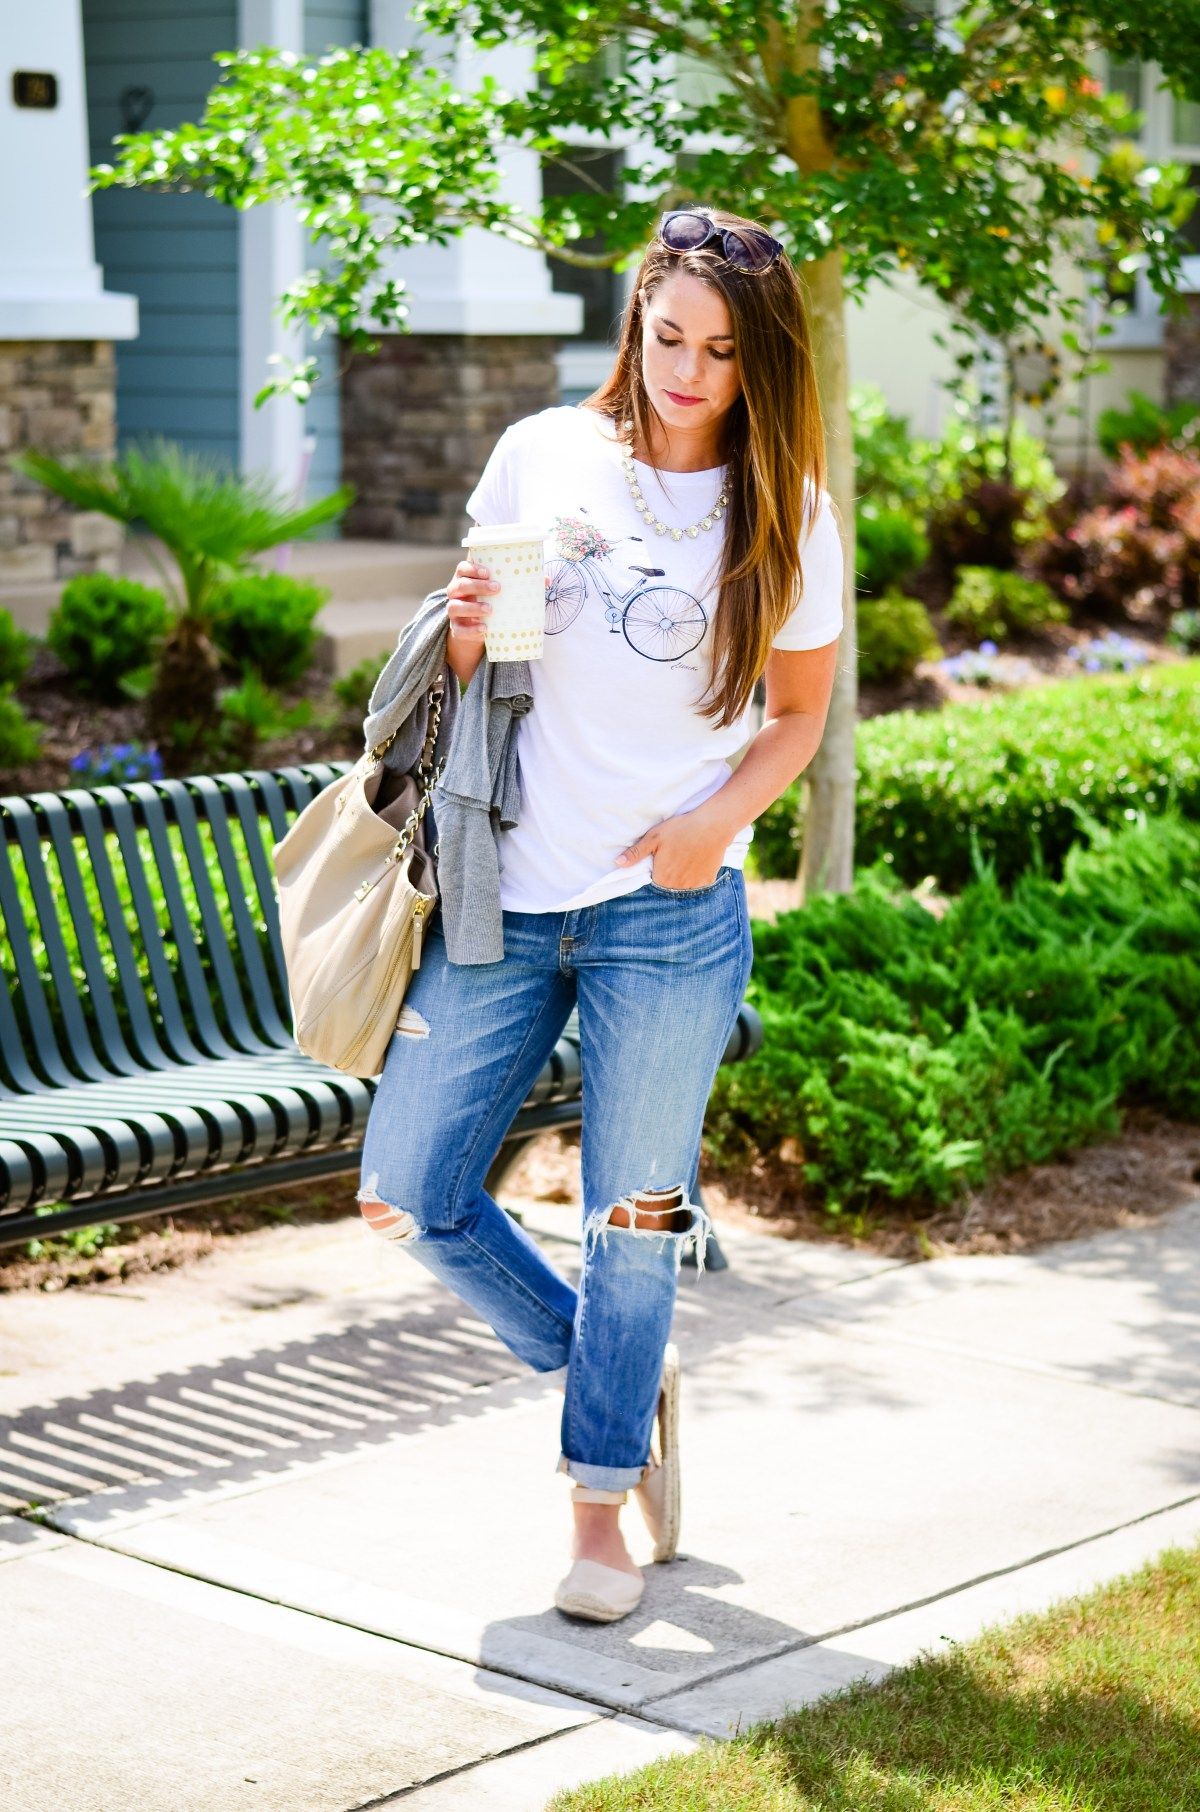 Nooir_Shirt_and_Boyfriend_Jeans-6